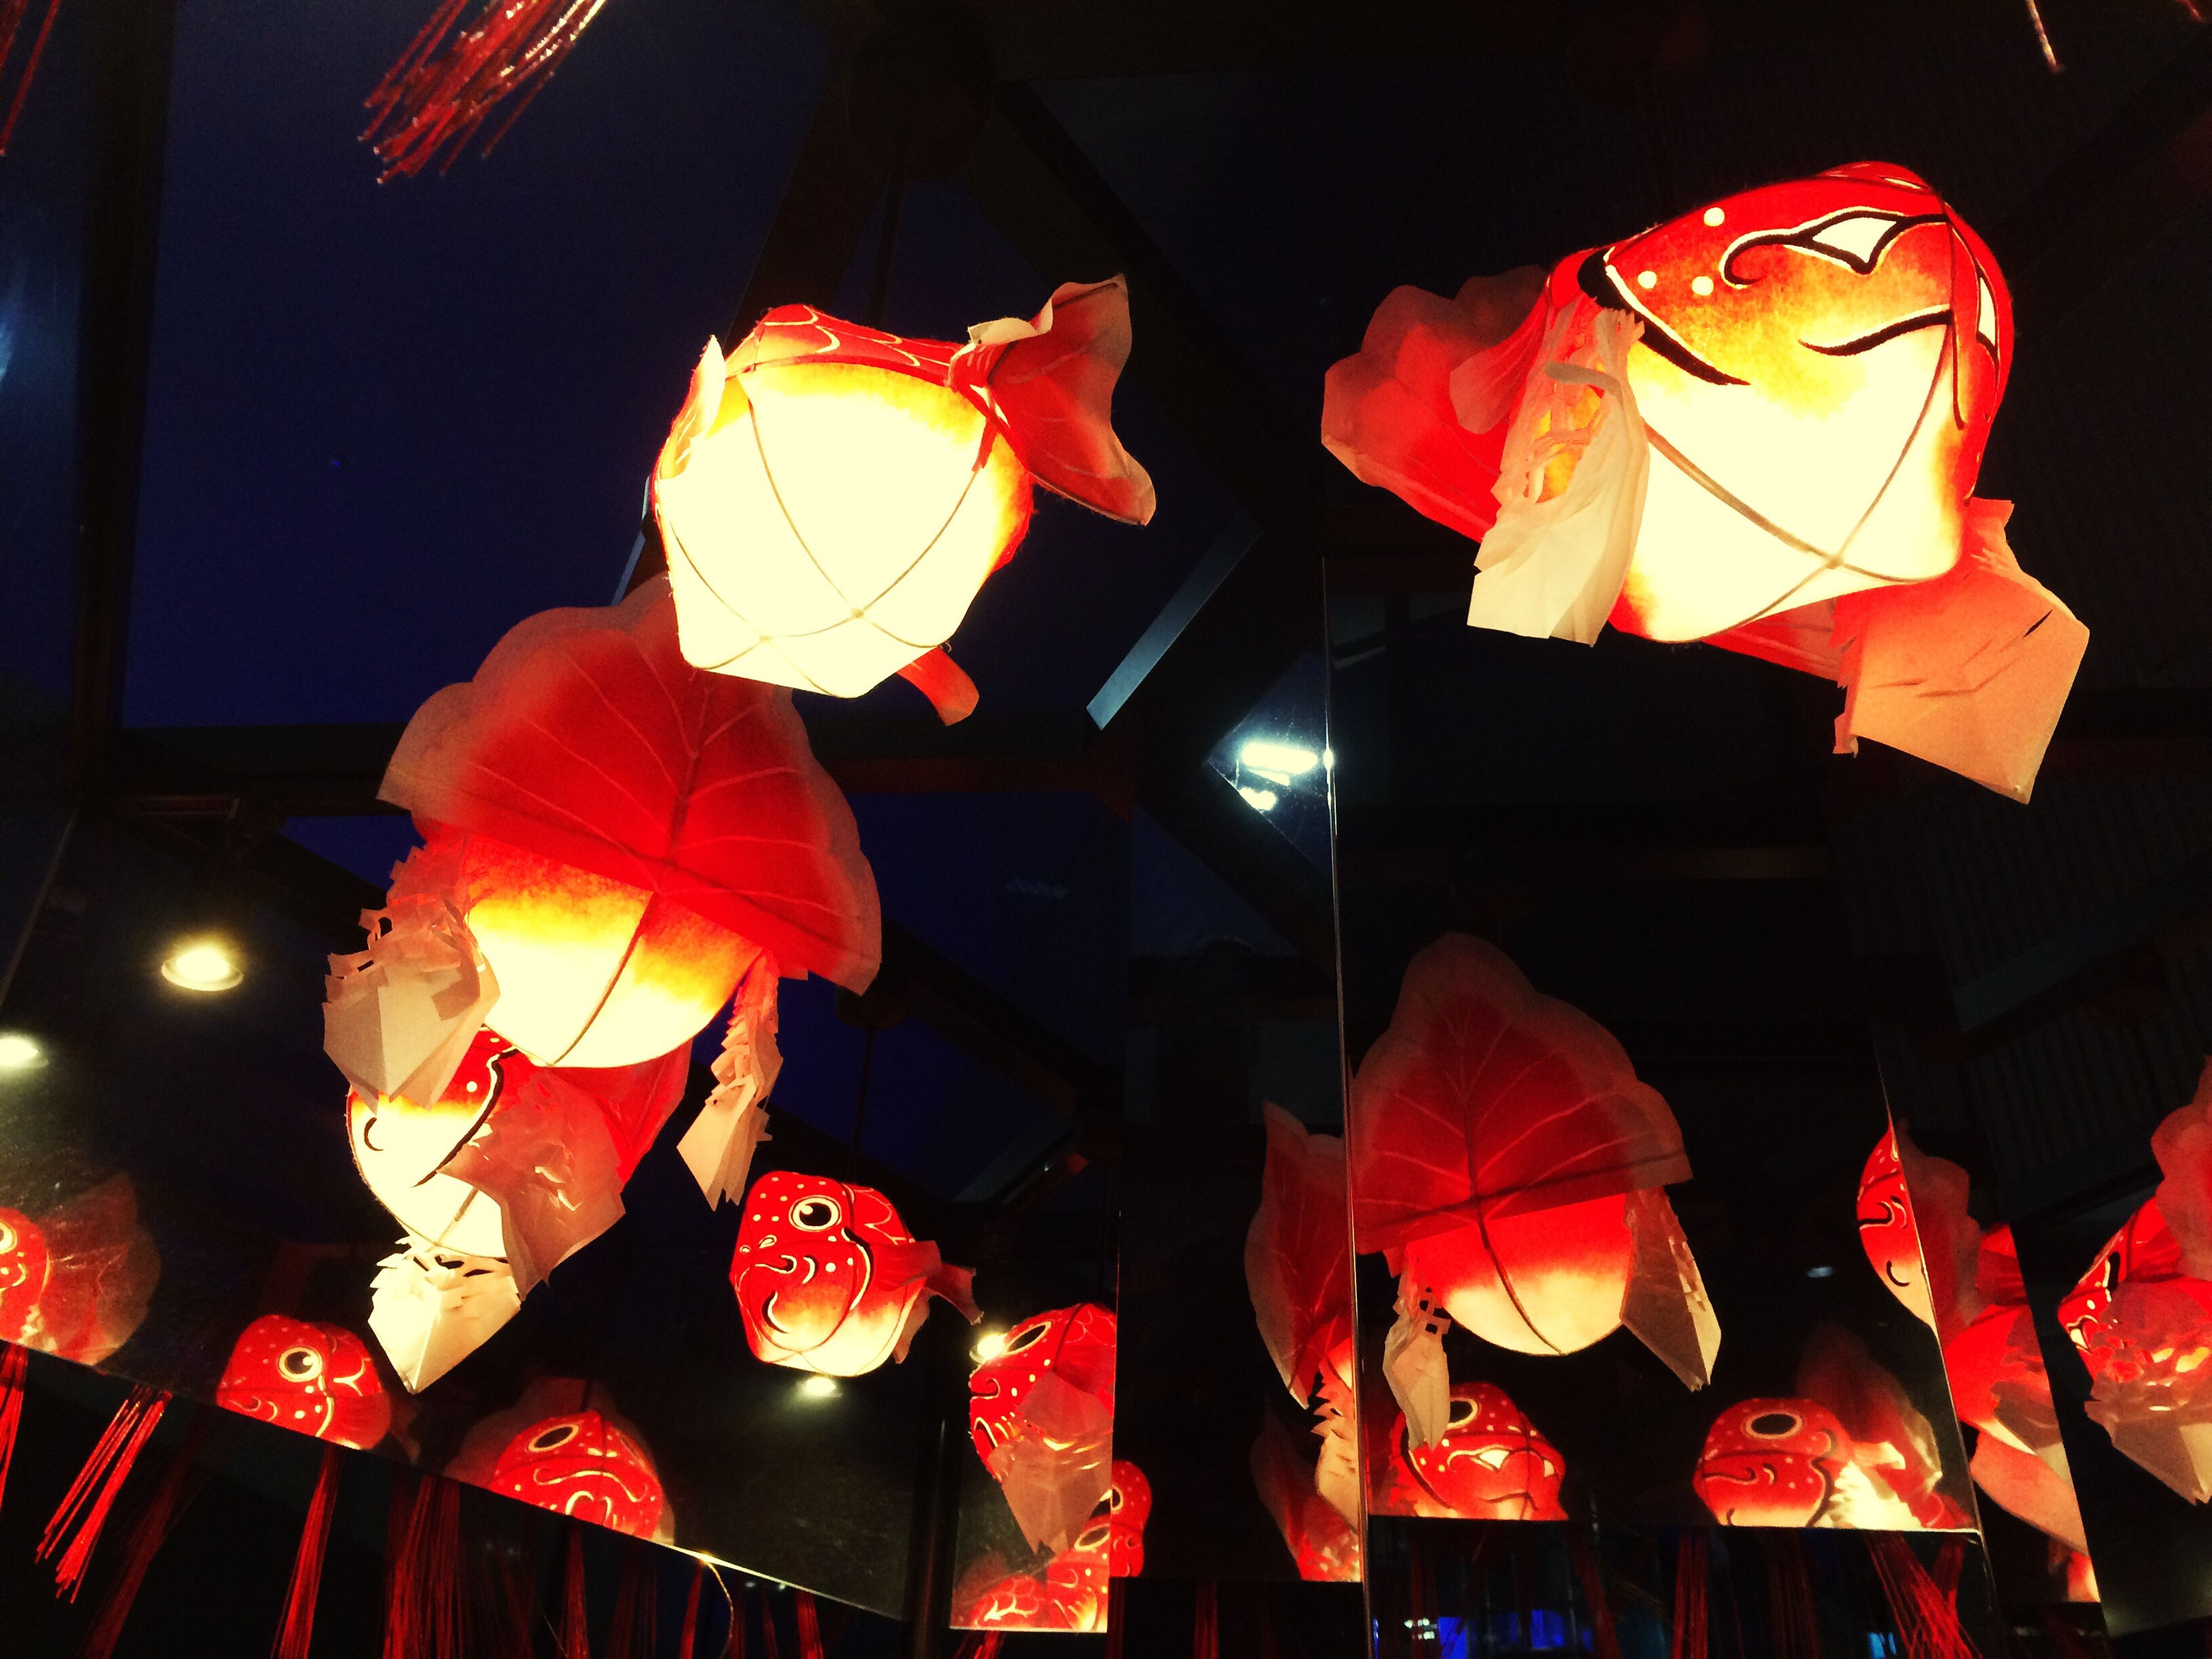 illuminated, decoration, indoors, hanging, lighting equipment, lantern, celebration, night, tradition, decor, low angle view, cultures, chinese lantern, red, electric lamp, traditional festival, electricity, christmas, ceiling, christmas decoration